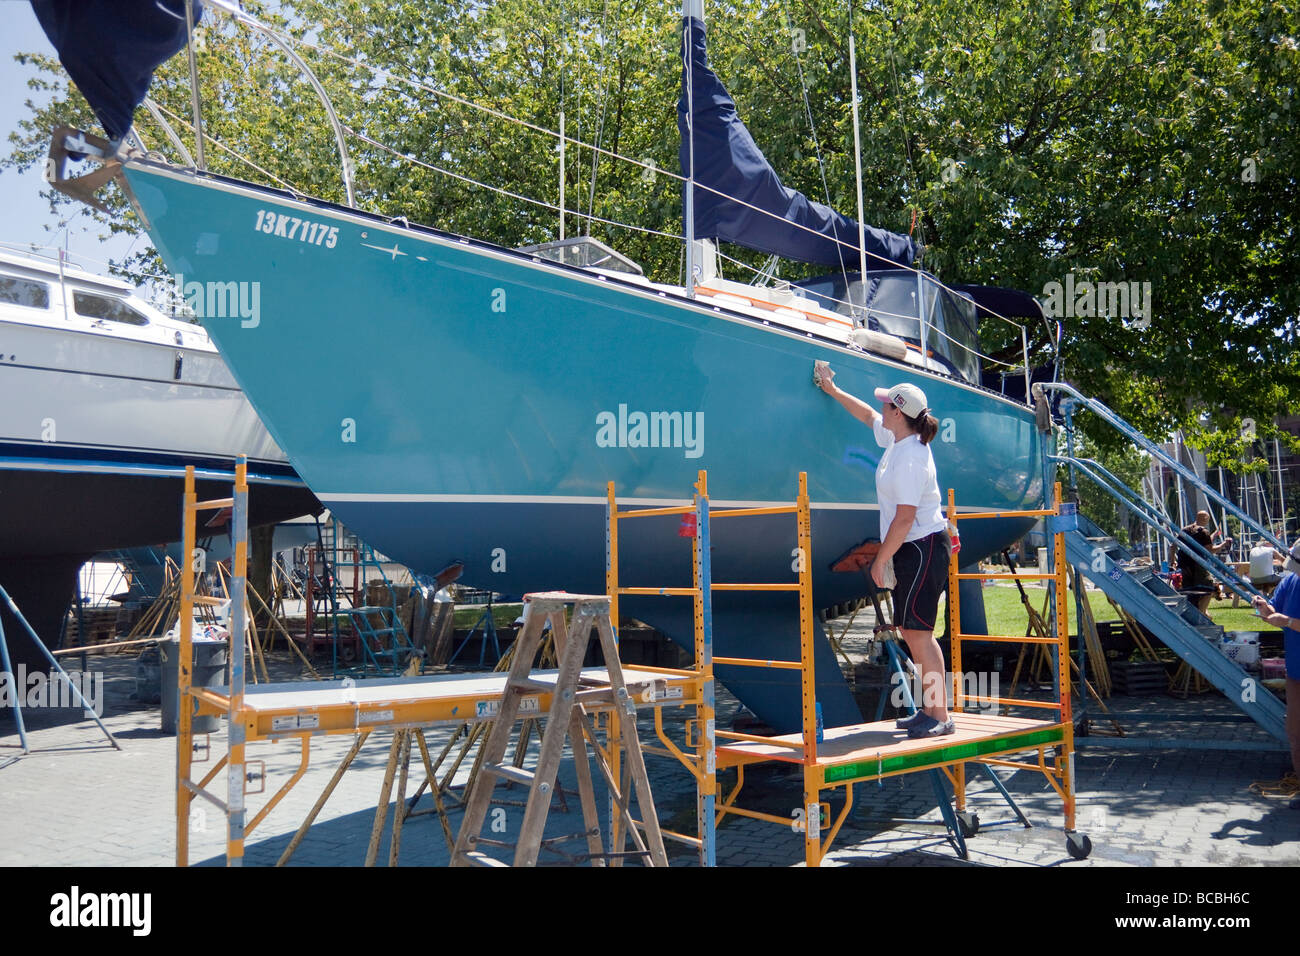 yacht receiving maintenance in Granville Island boatyard, Vancouver, BC, Canada - Stock Image